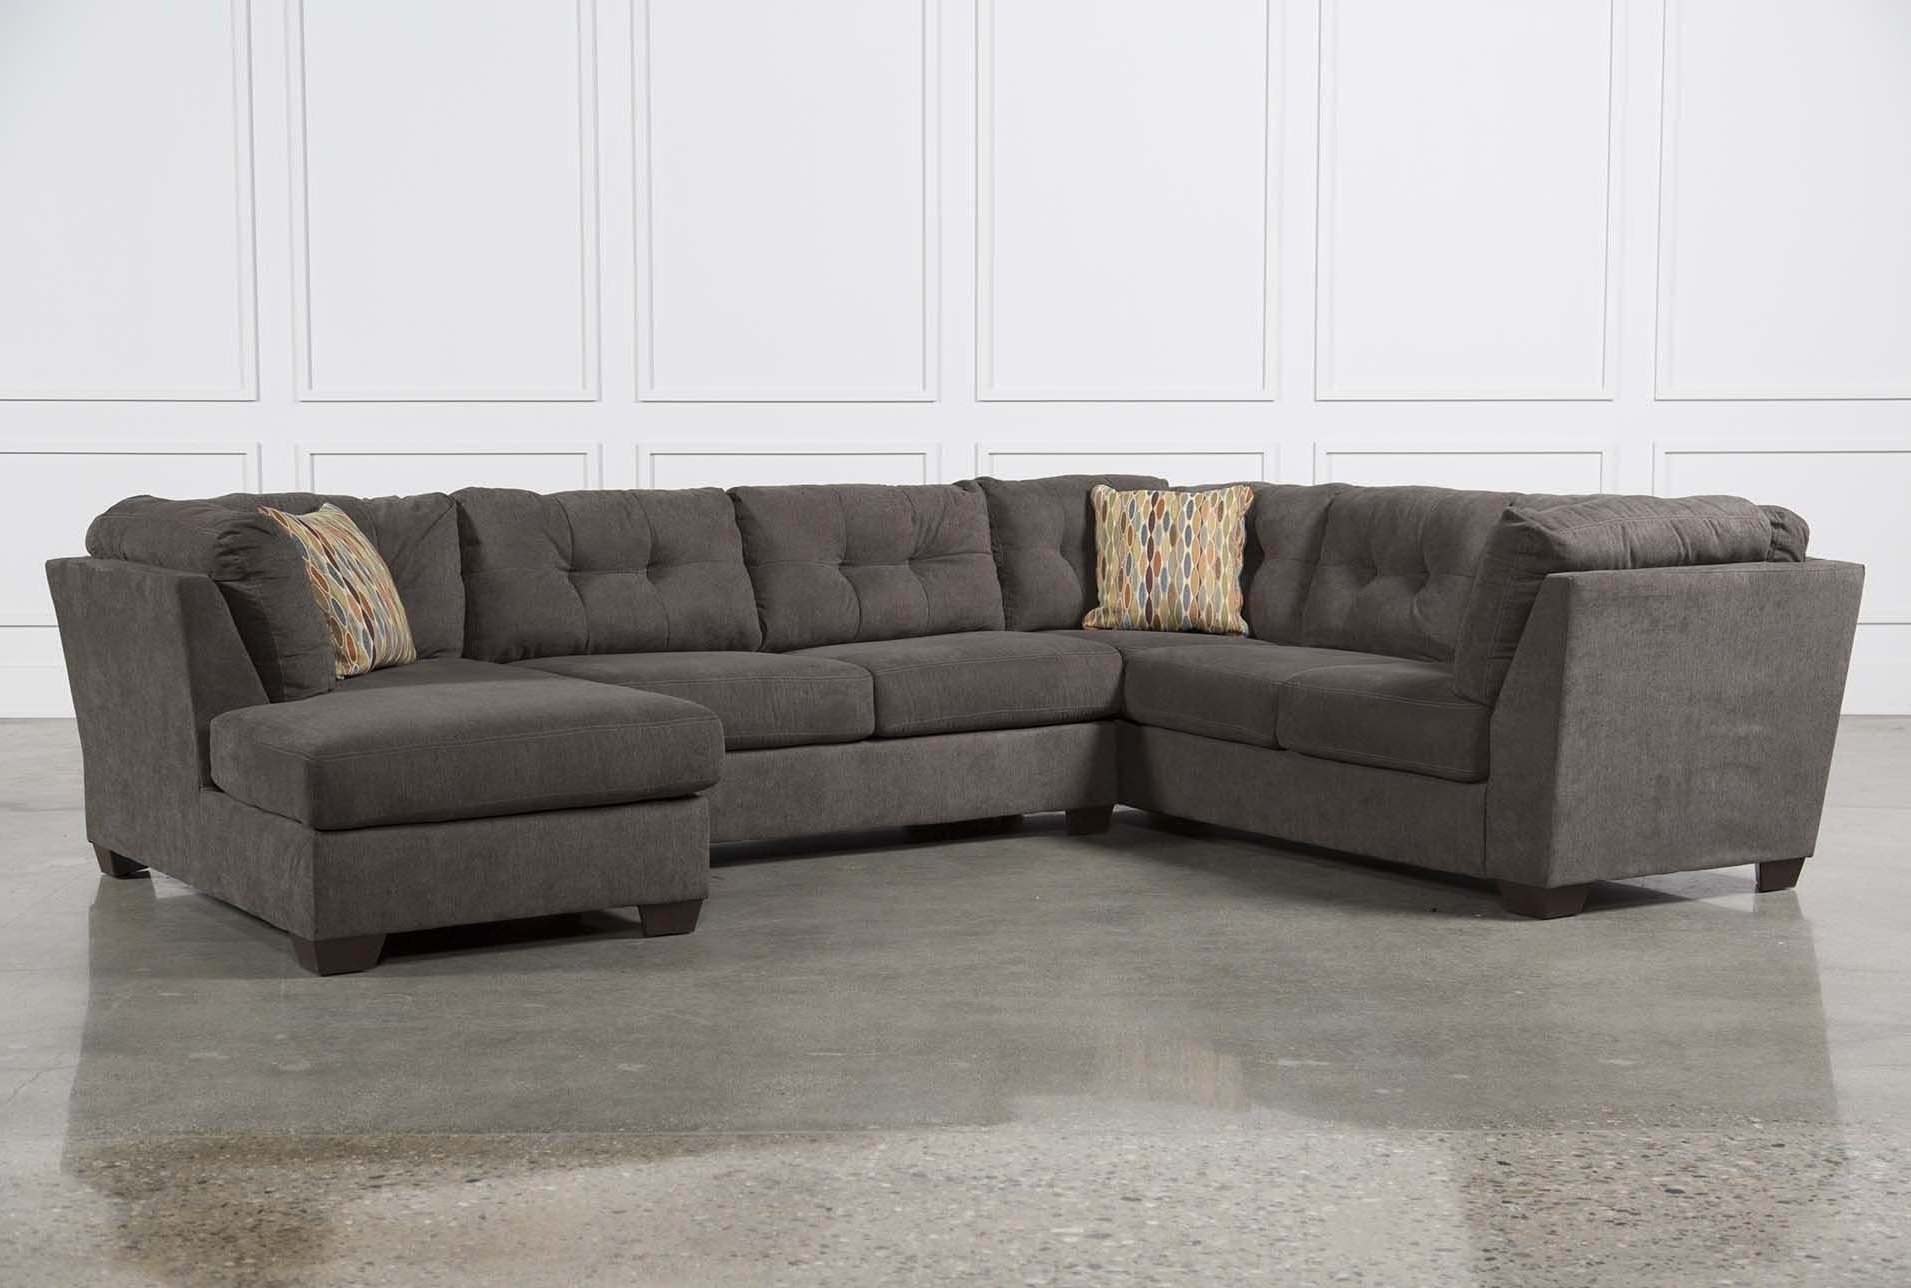 3 Piece Sectional Sleeper Sofas in Widely used Sofas : Fabric Sectional Sofas White Leather Sectional 3 Piece